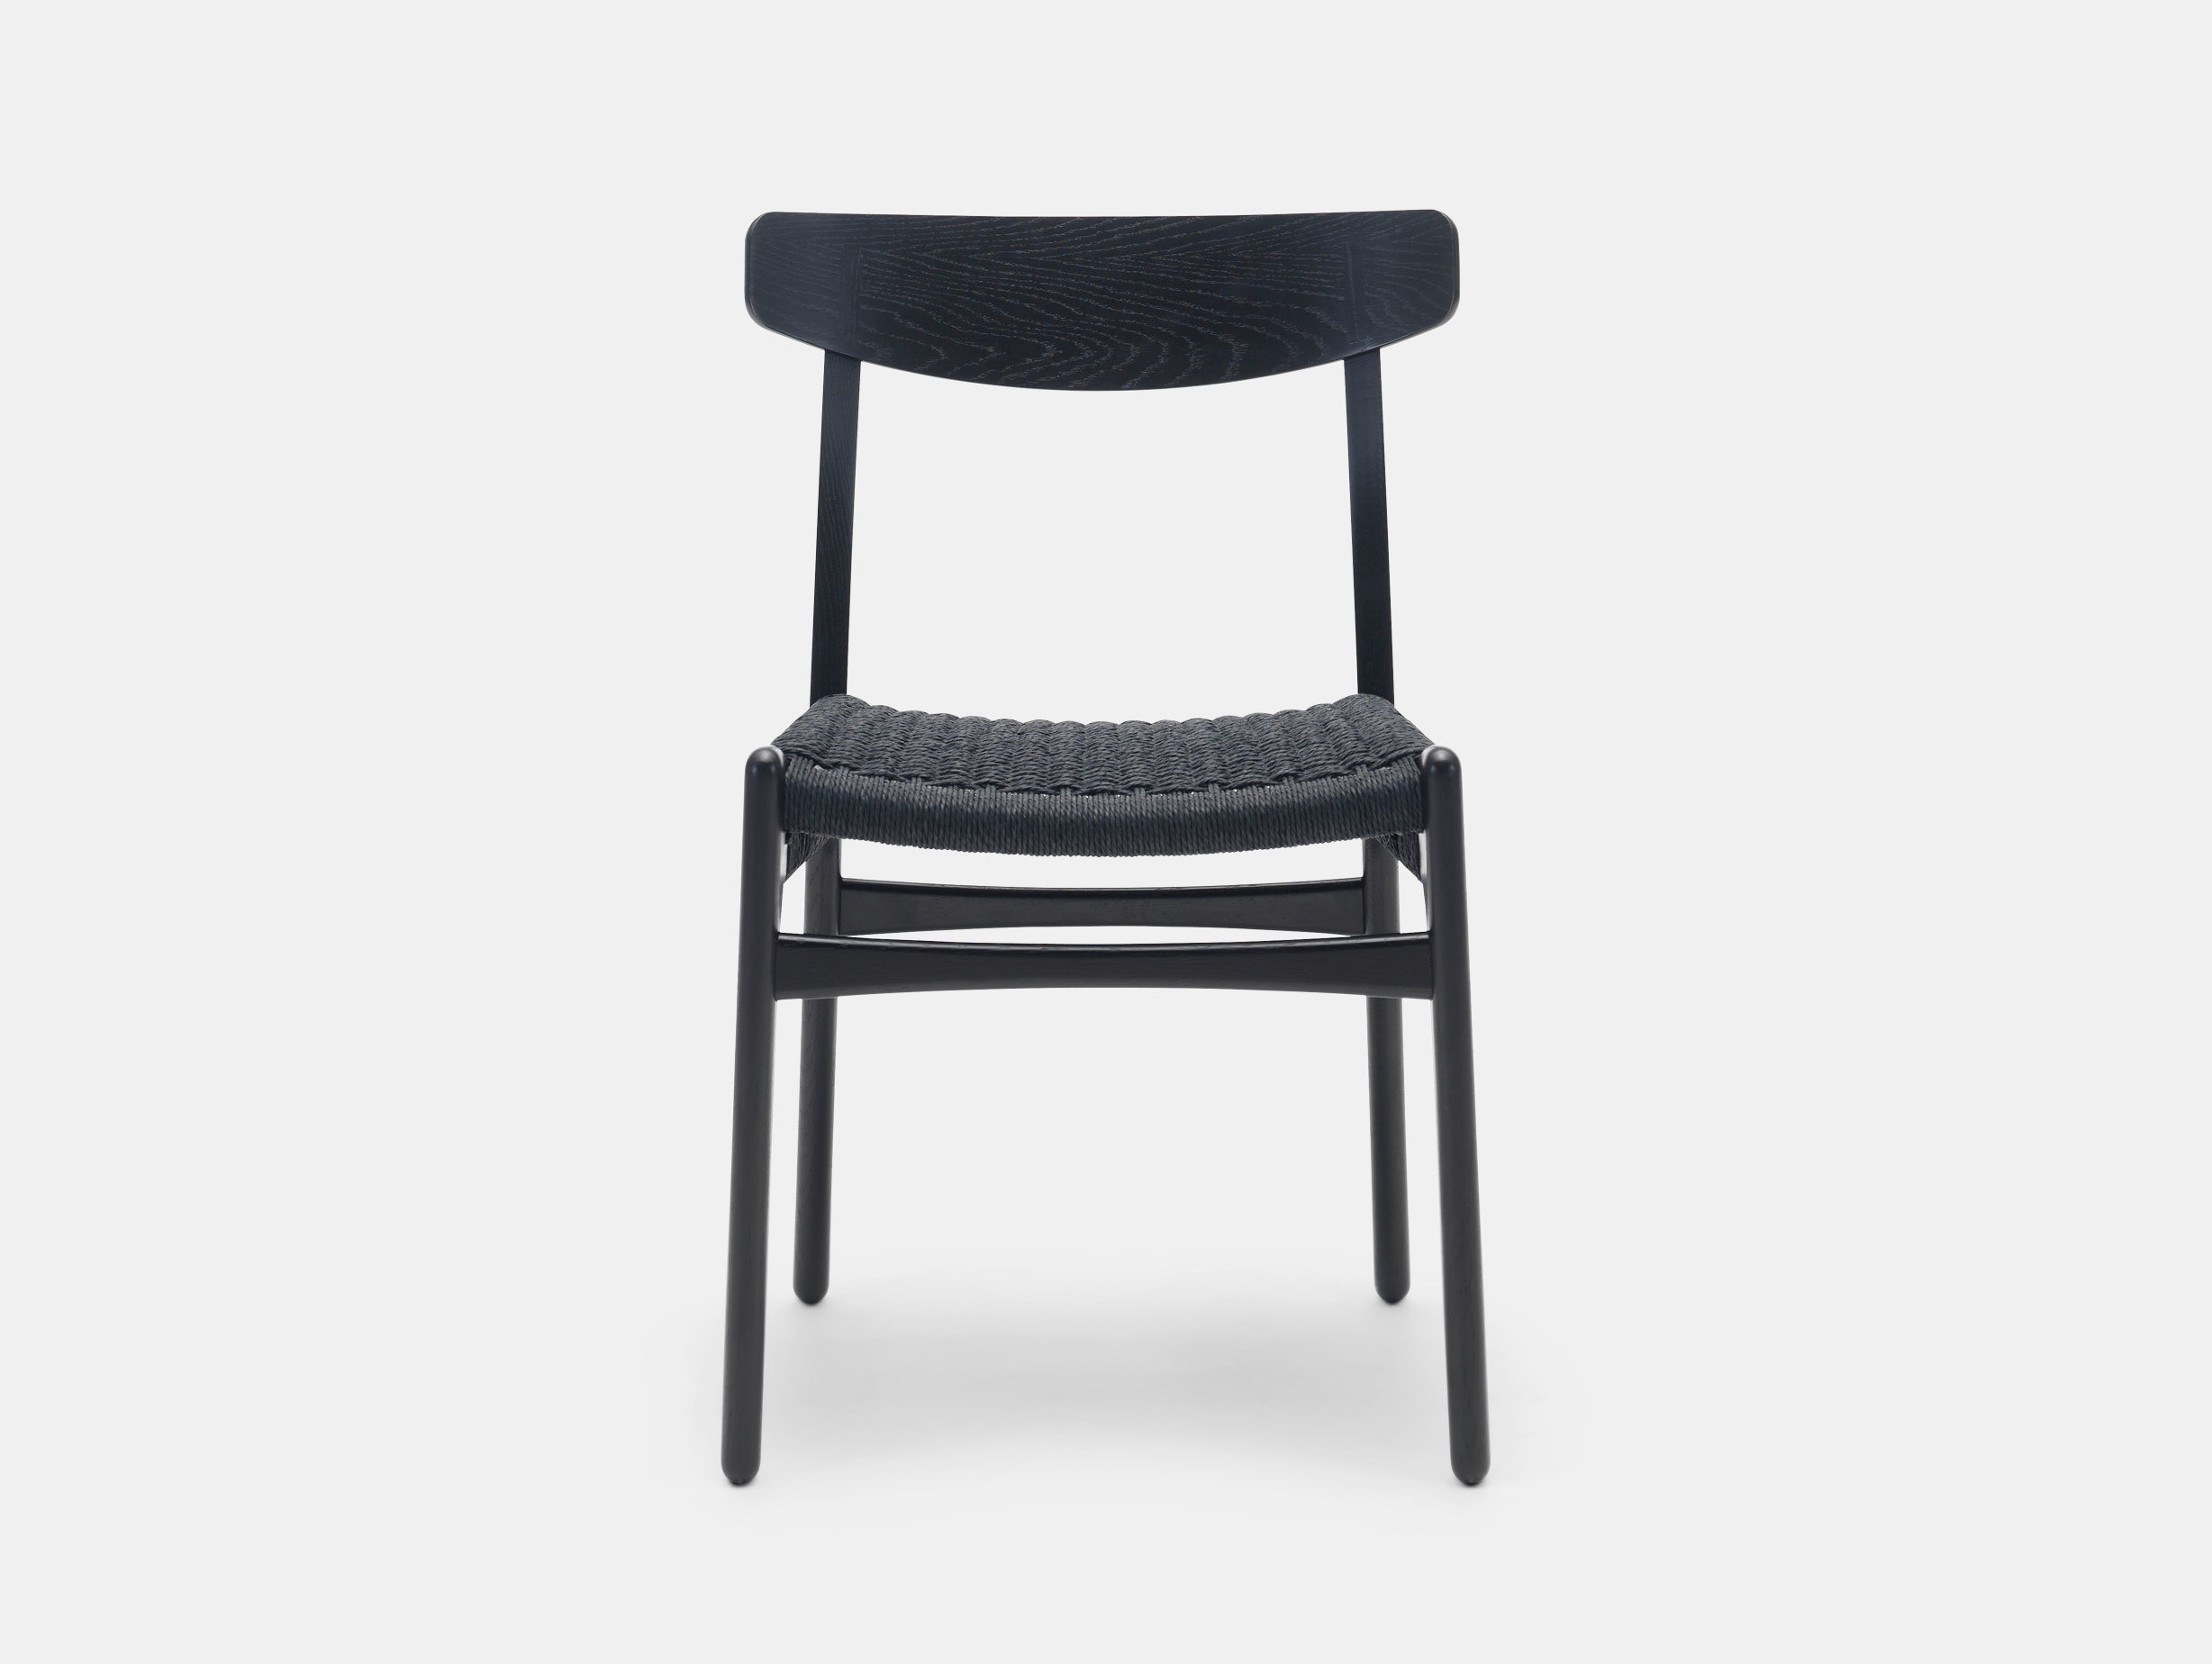 CH23 Chair image 8